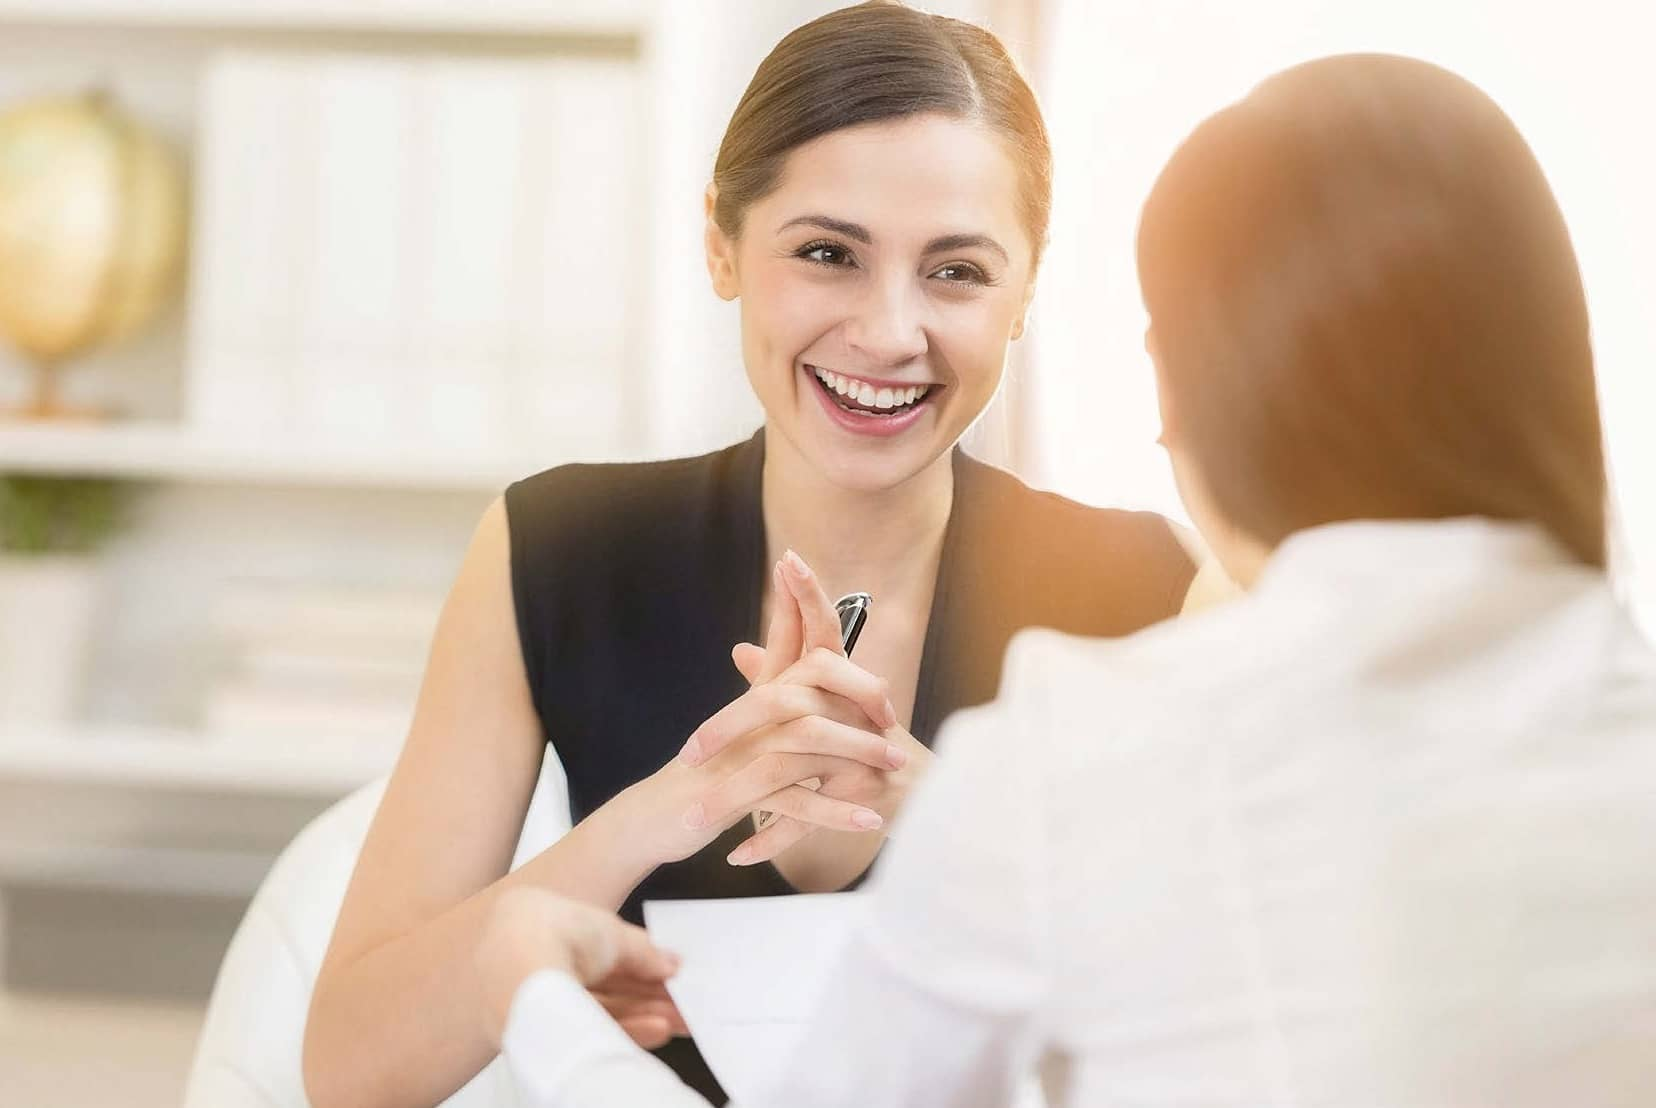 5 Sure-Fire Ways To Nail That Job Interview